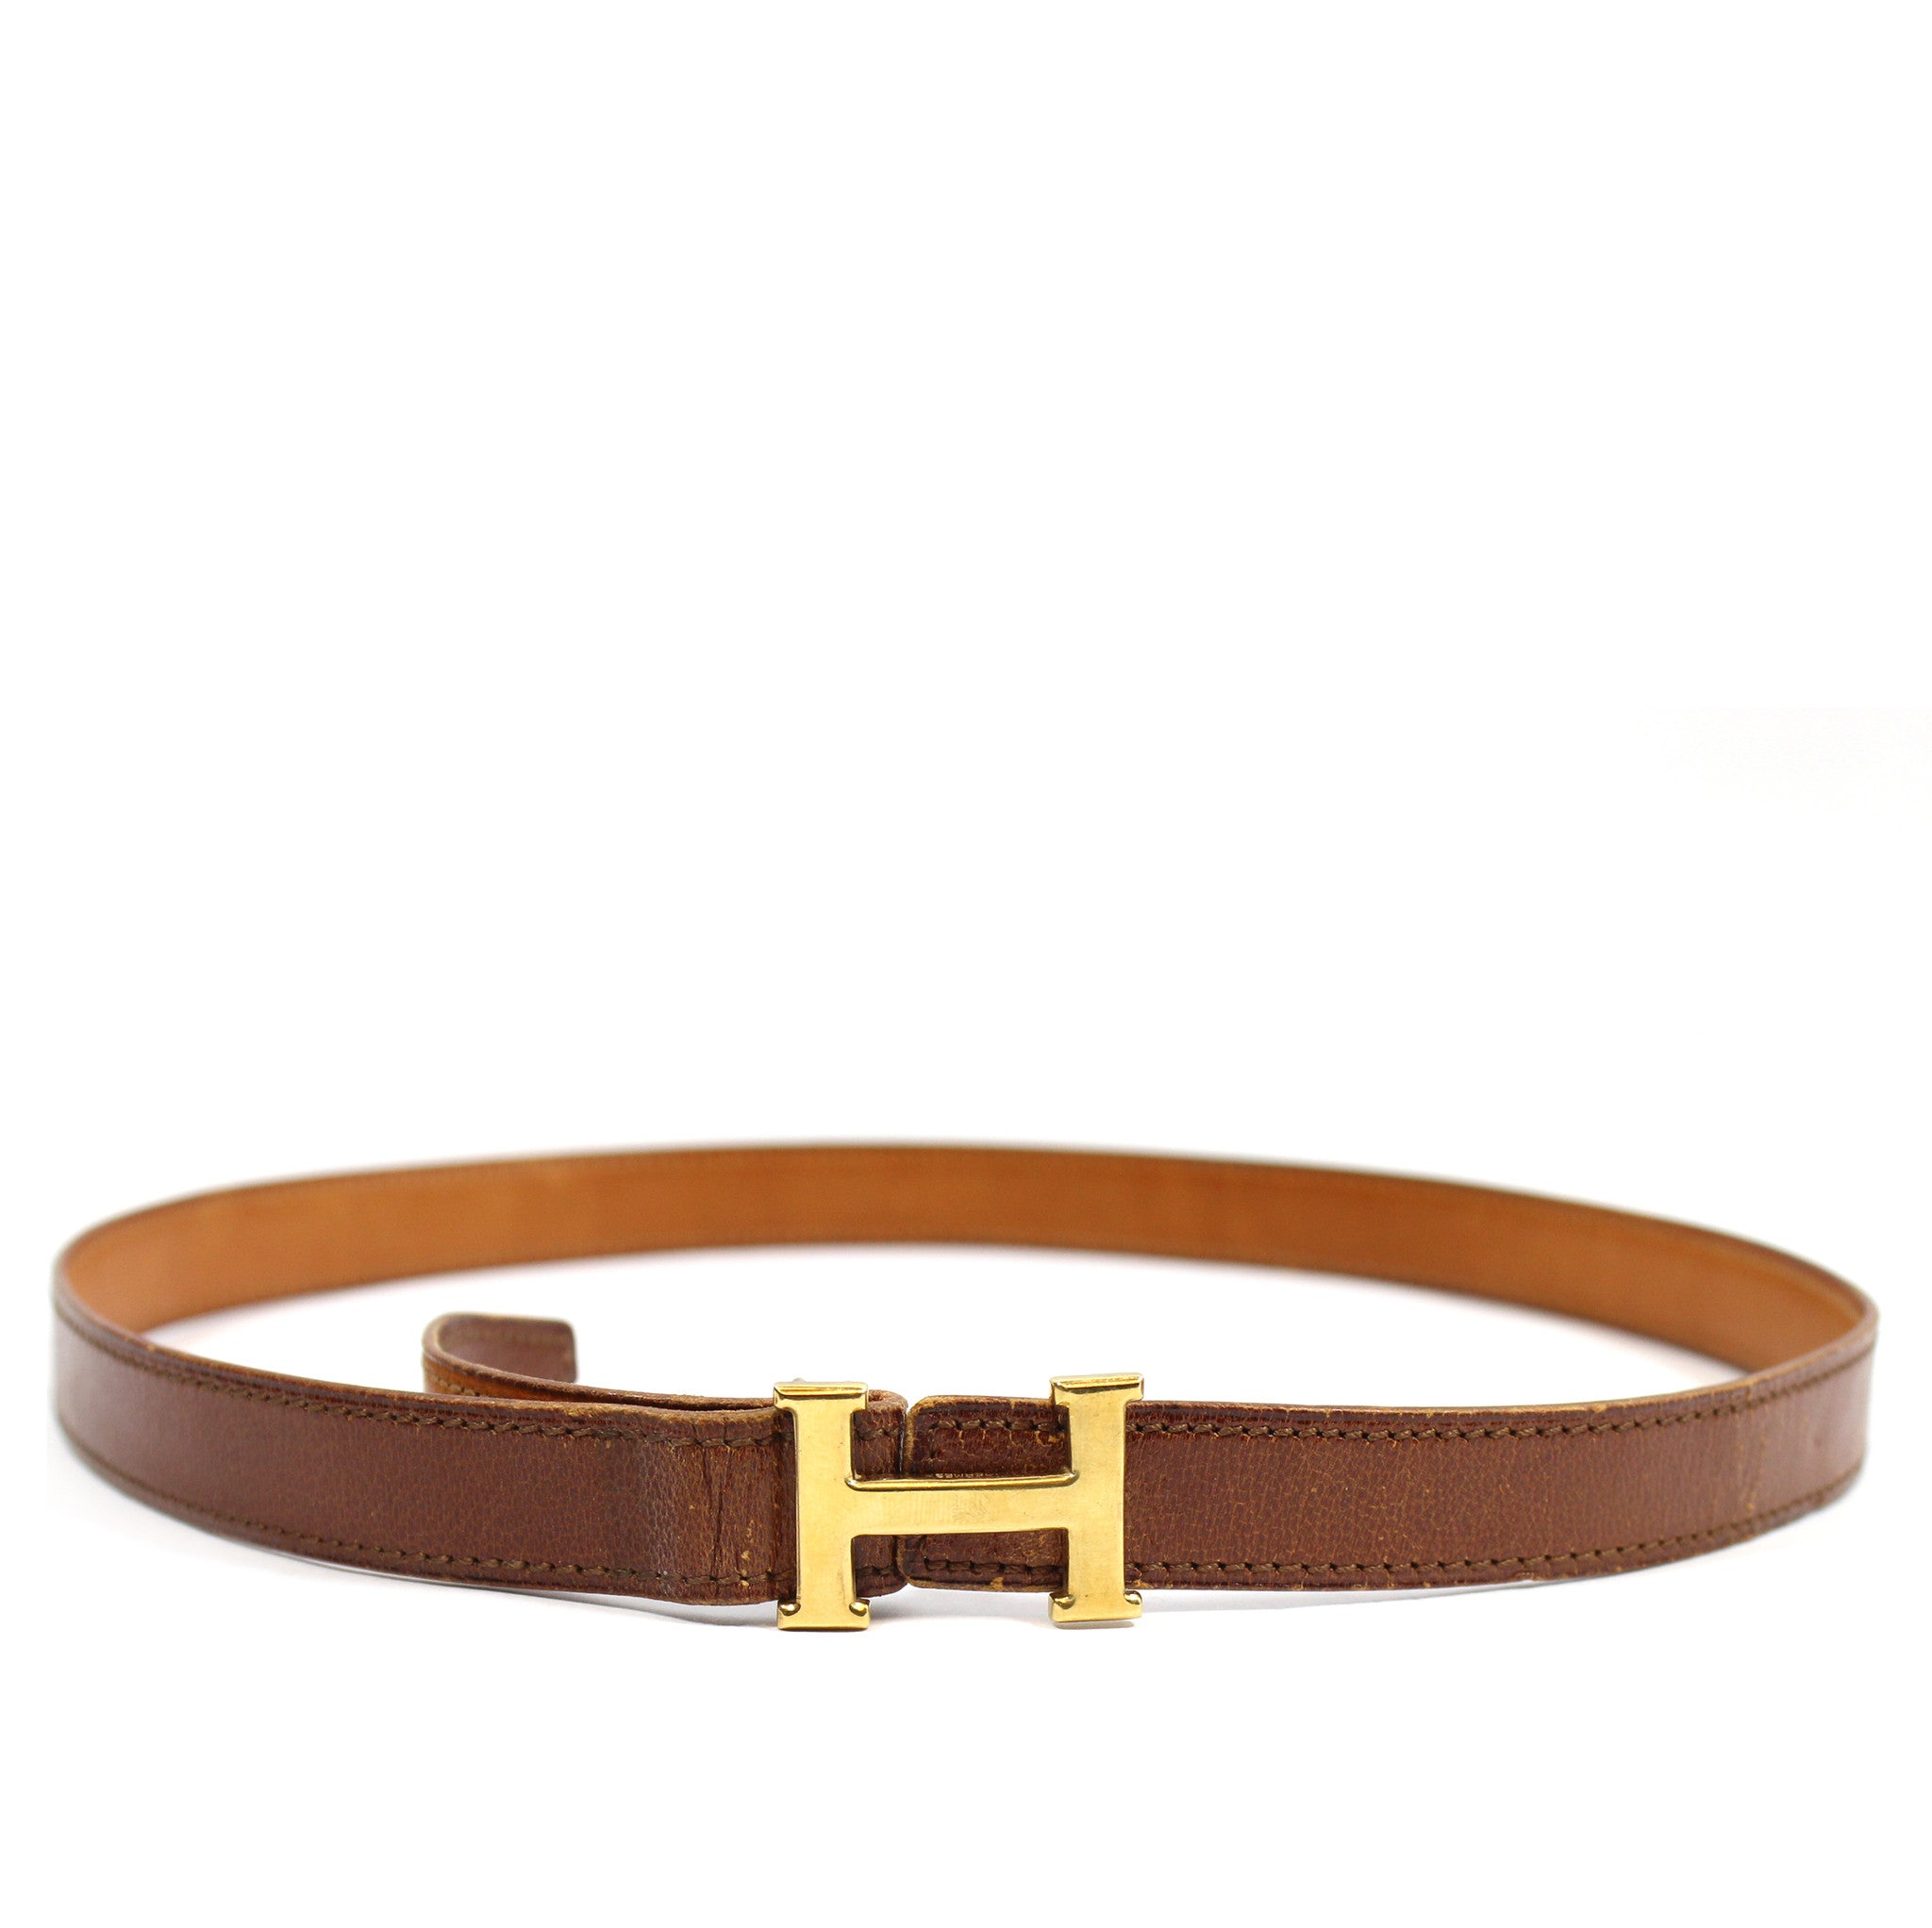 ~done~ Hermes Thin Brown Leather Belt w/ Gold Logo Buckle - Encore Consignment - 1